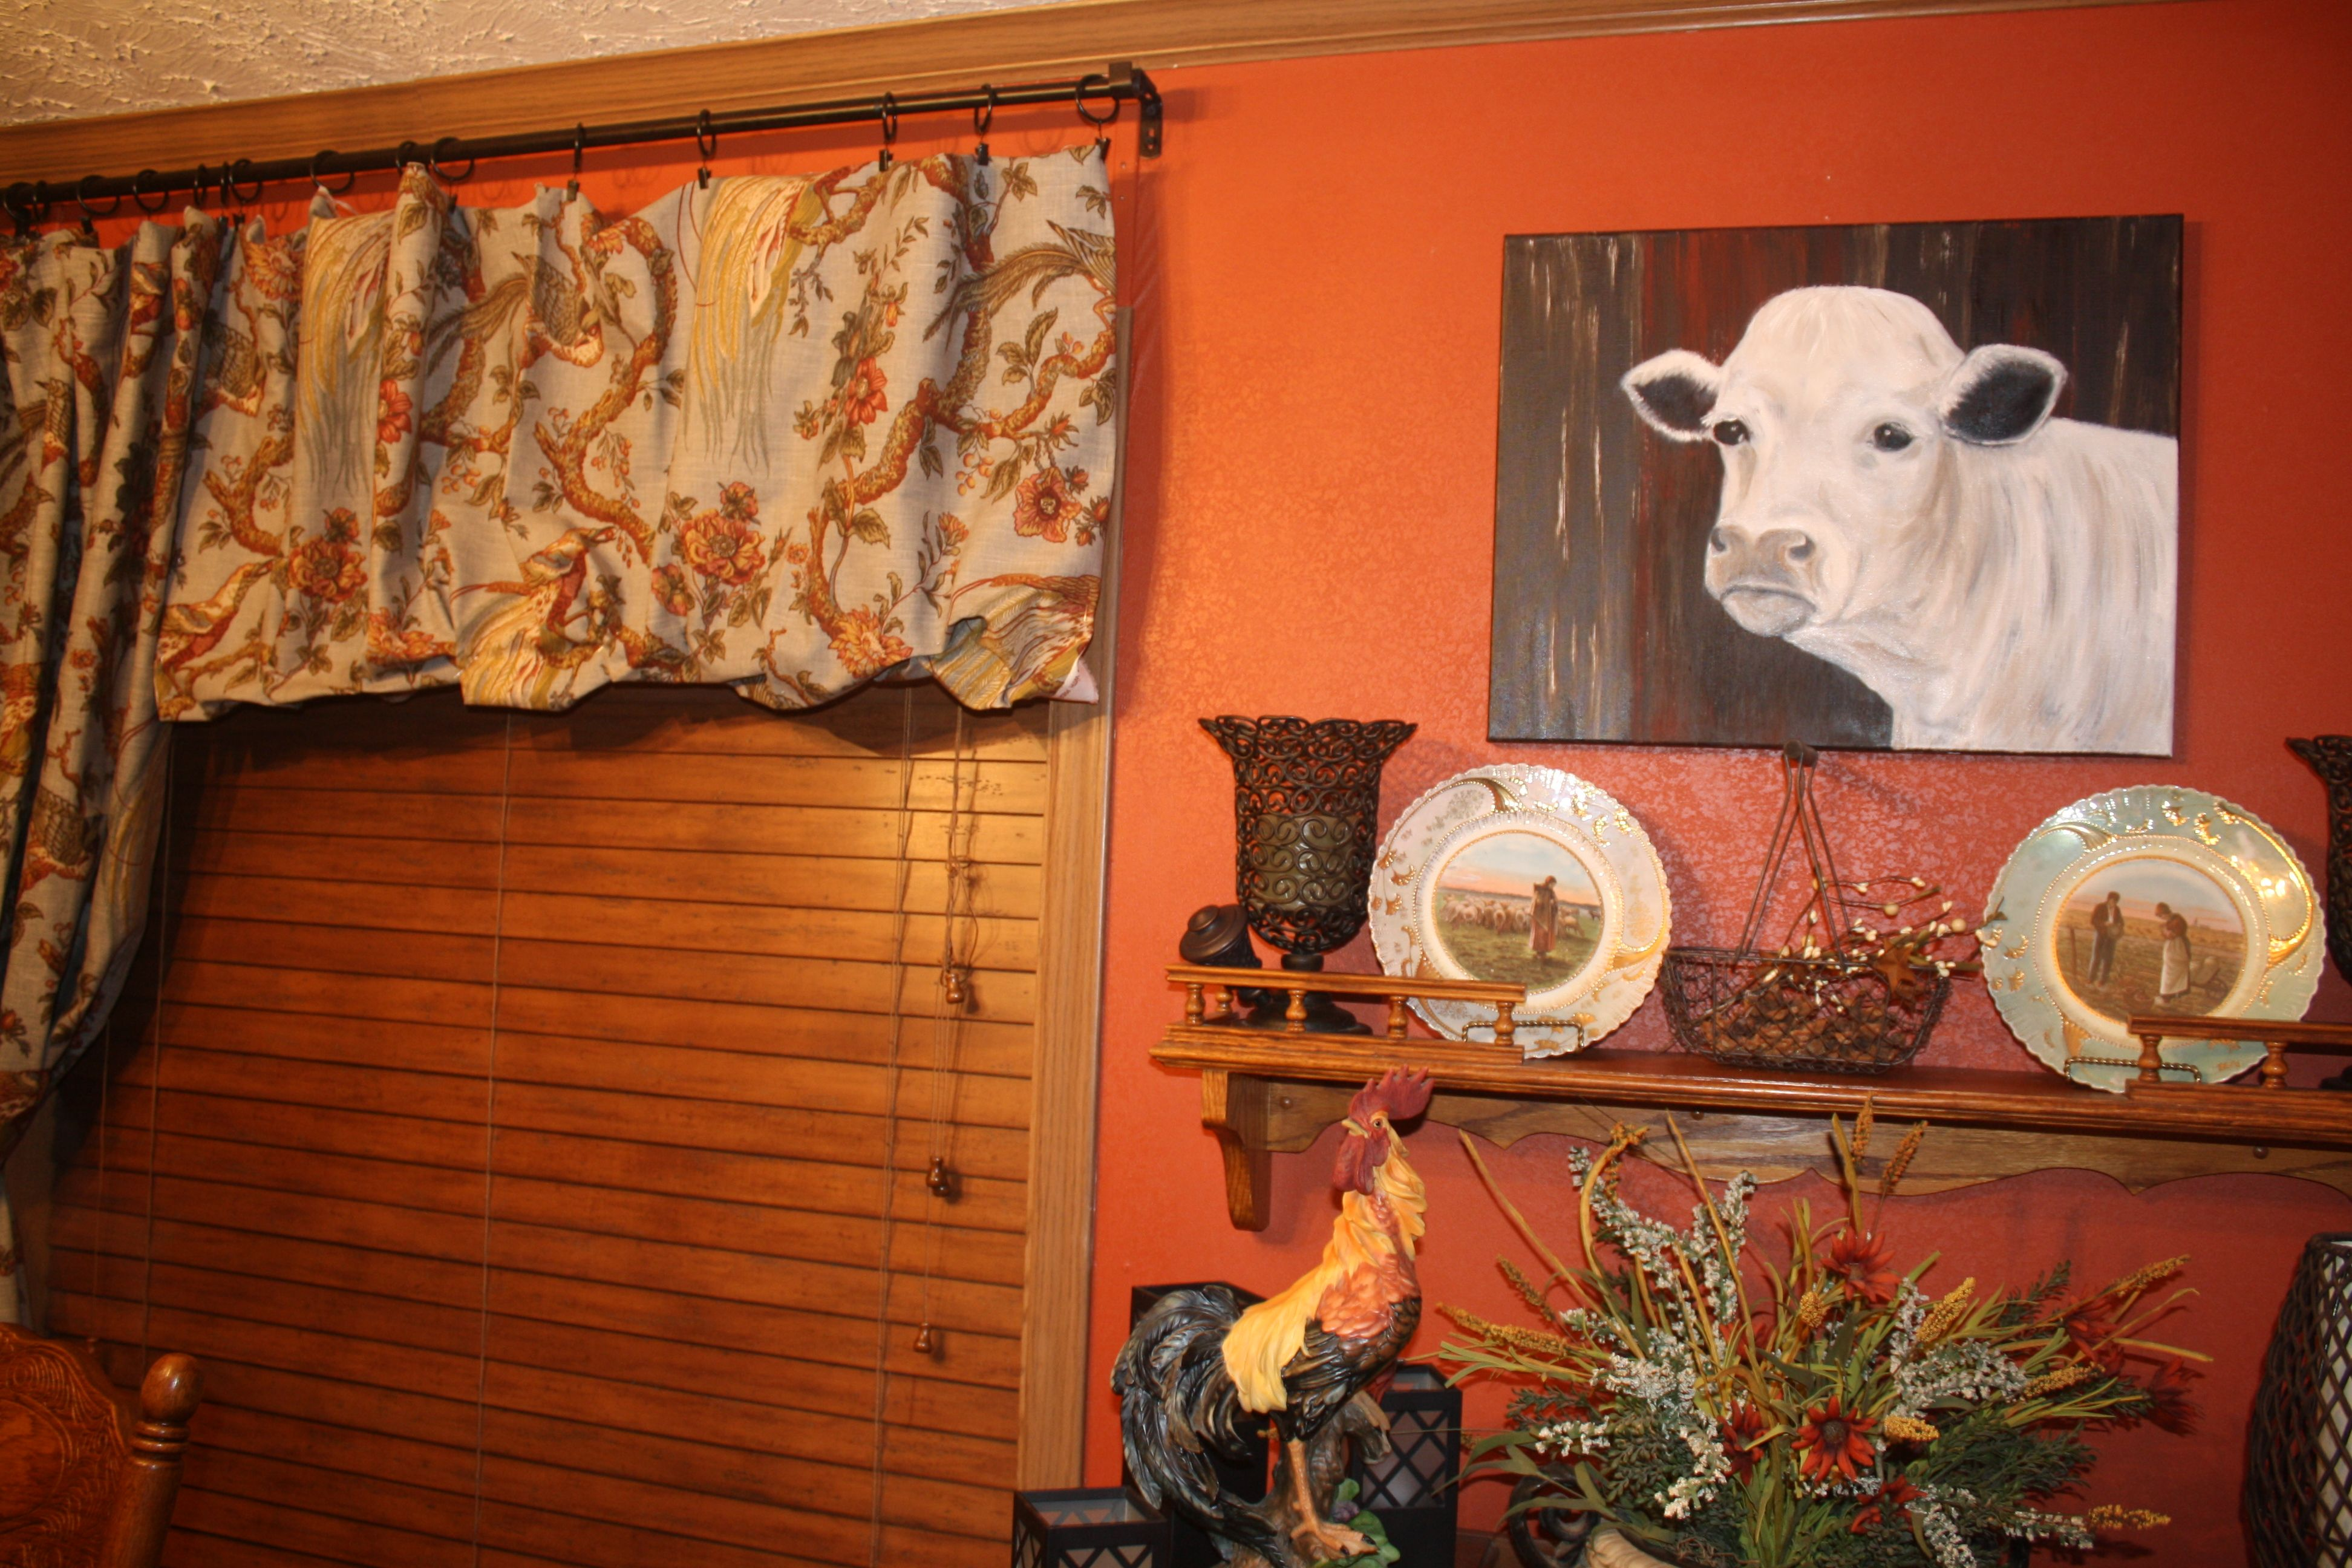 Cow Oil Painting By Me Leanna Randol And The Next Project Of